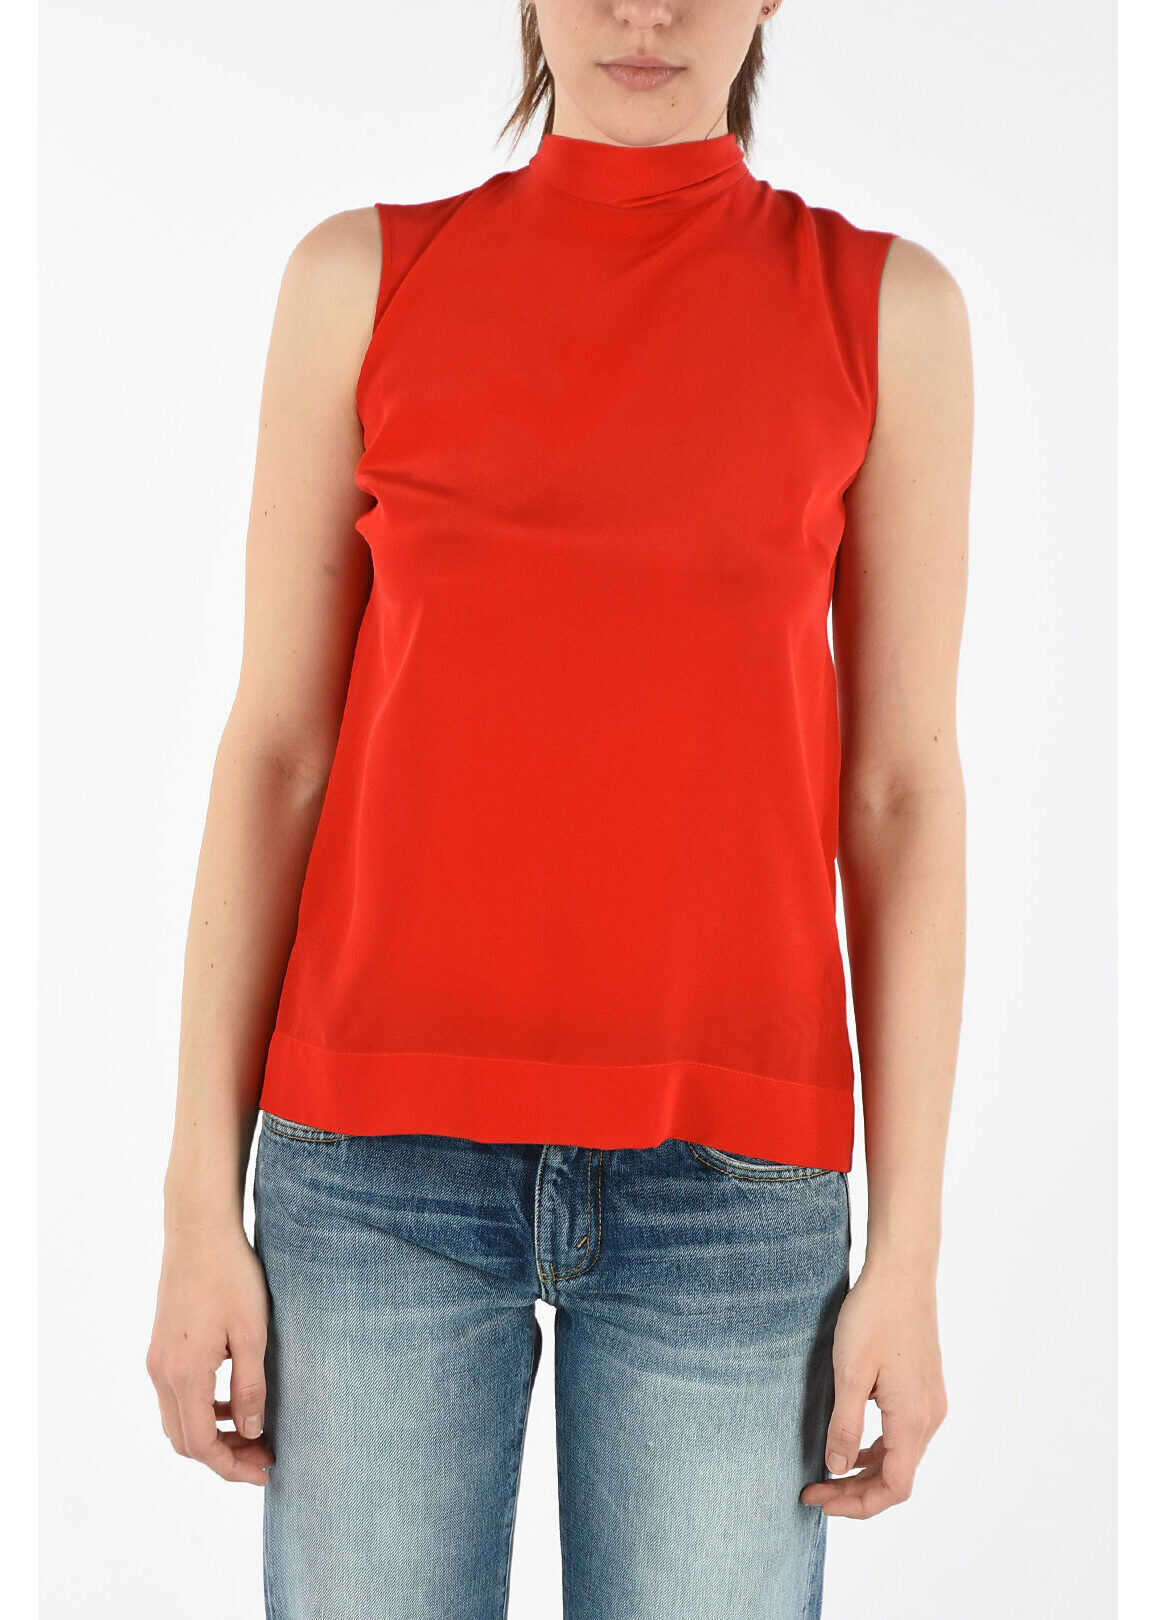 Ermanno Scervino Silk Top with Bow RED